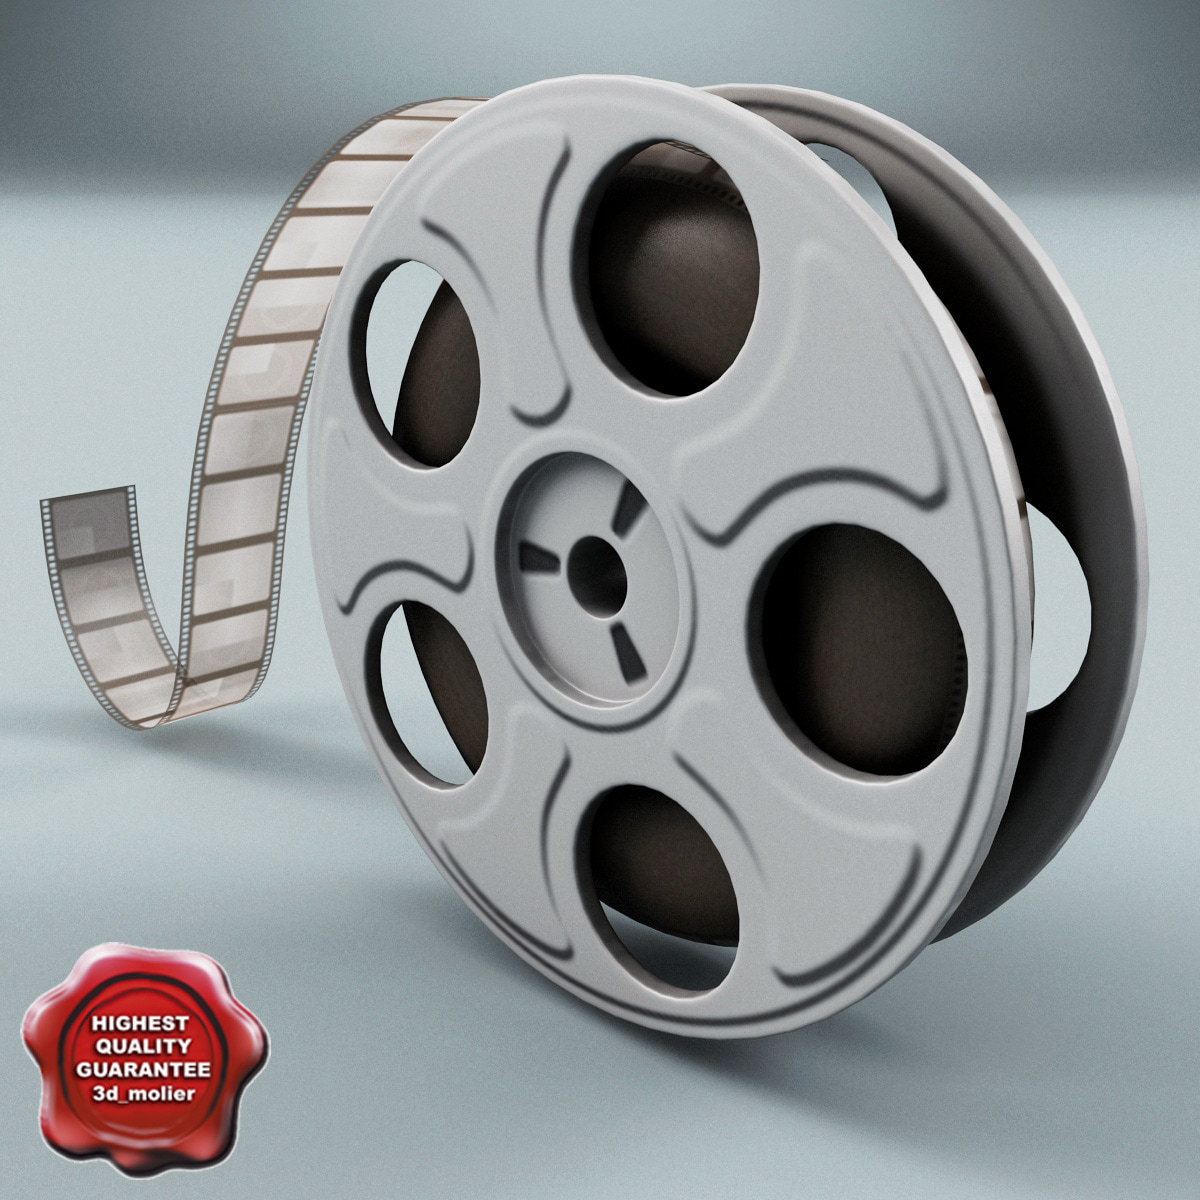 Video_Film_Reel_Low_Poly_00.jpg